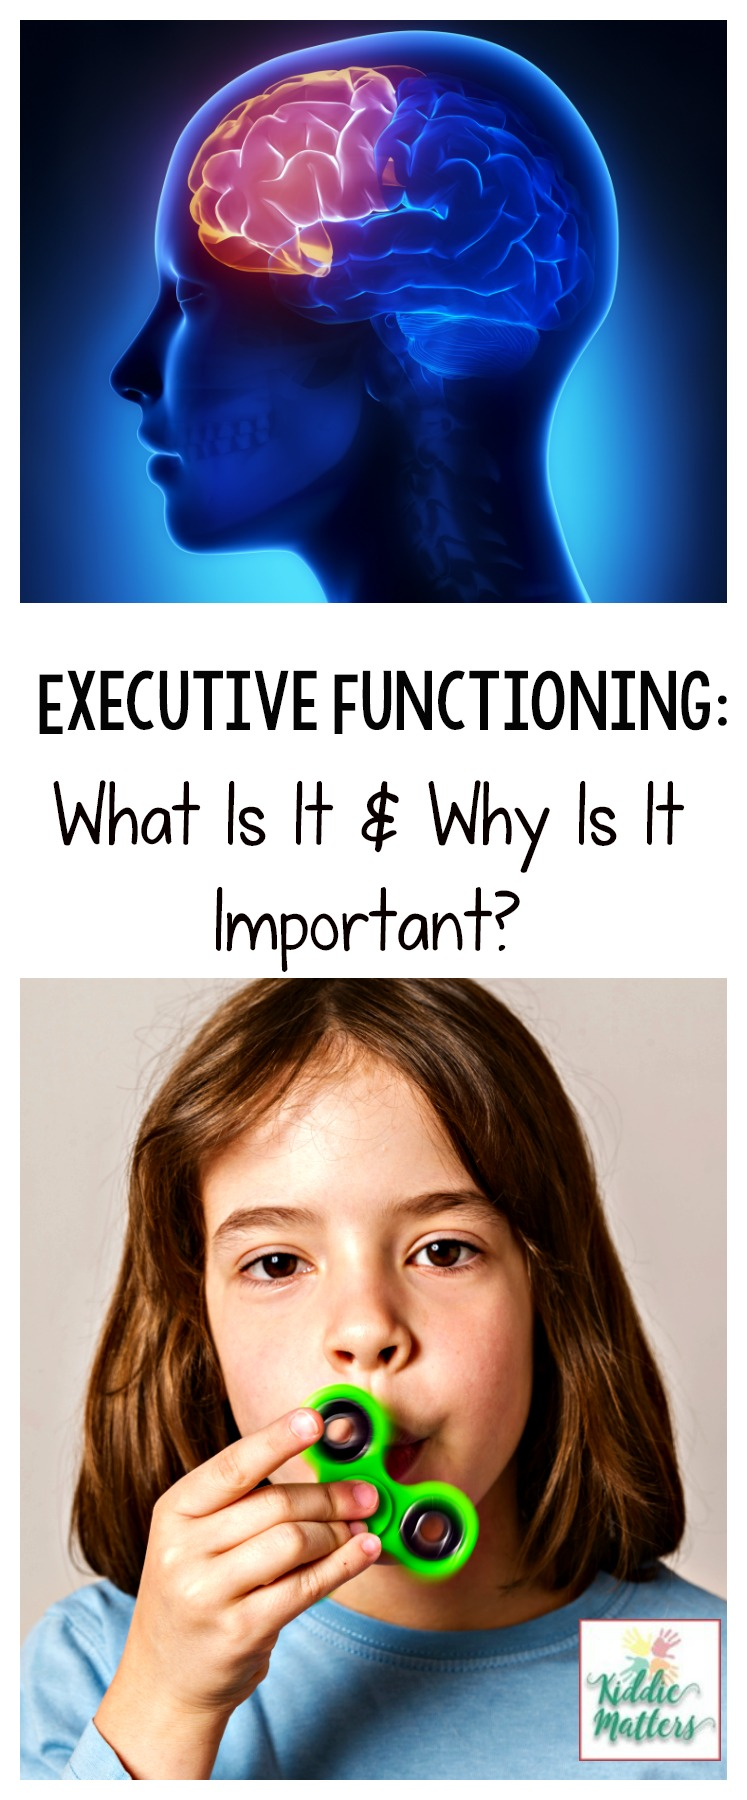 Executive functioning explained! Find out how to help kids with planning, organization, attention, and more! #ADHD #schoolcounseling #specialneeds